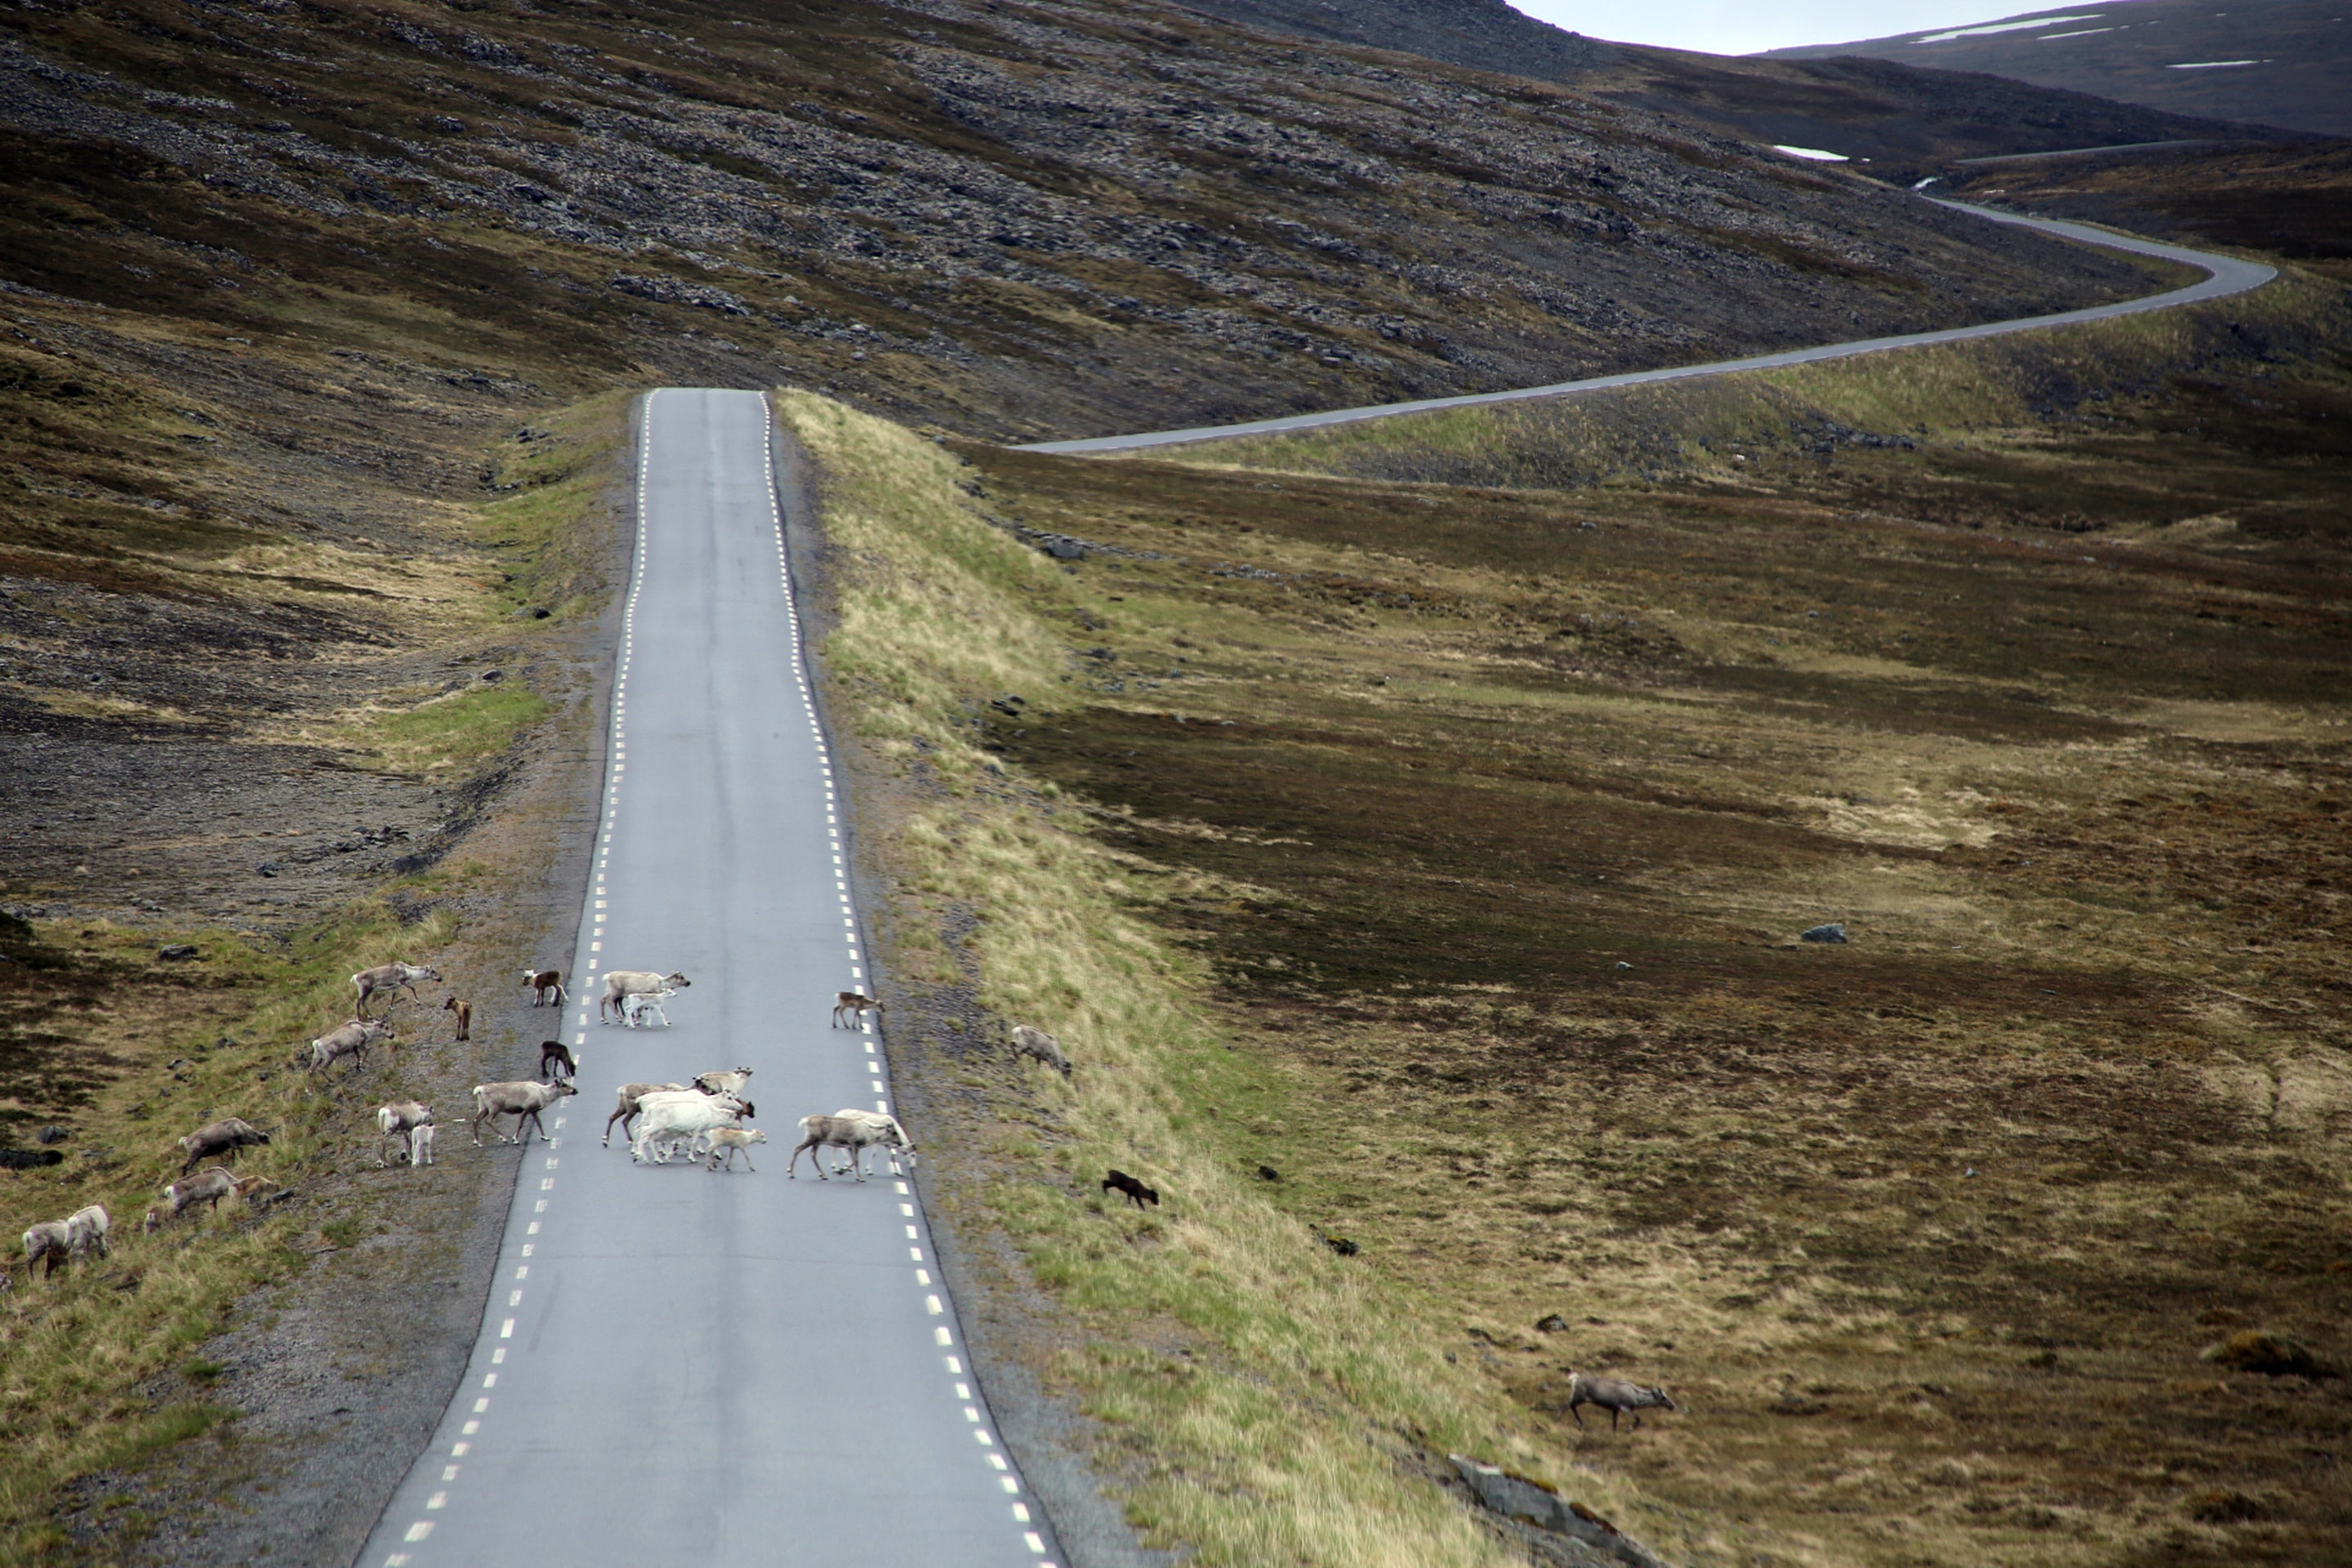 Reindeer crossing the street, Finnmark, Norway. Photo: Mark König / Unsplash